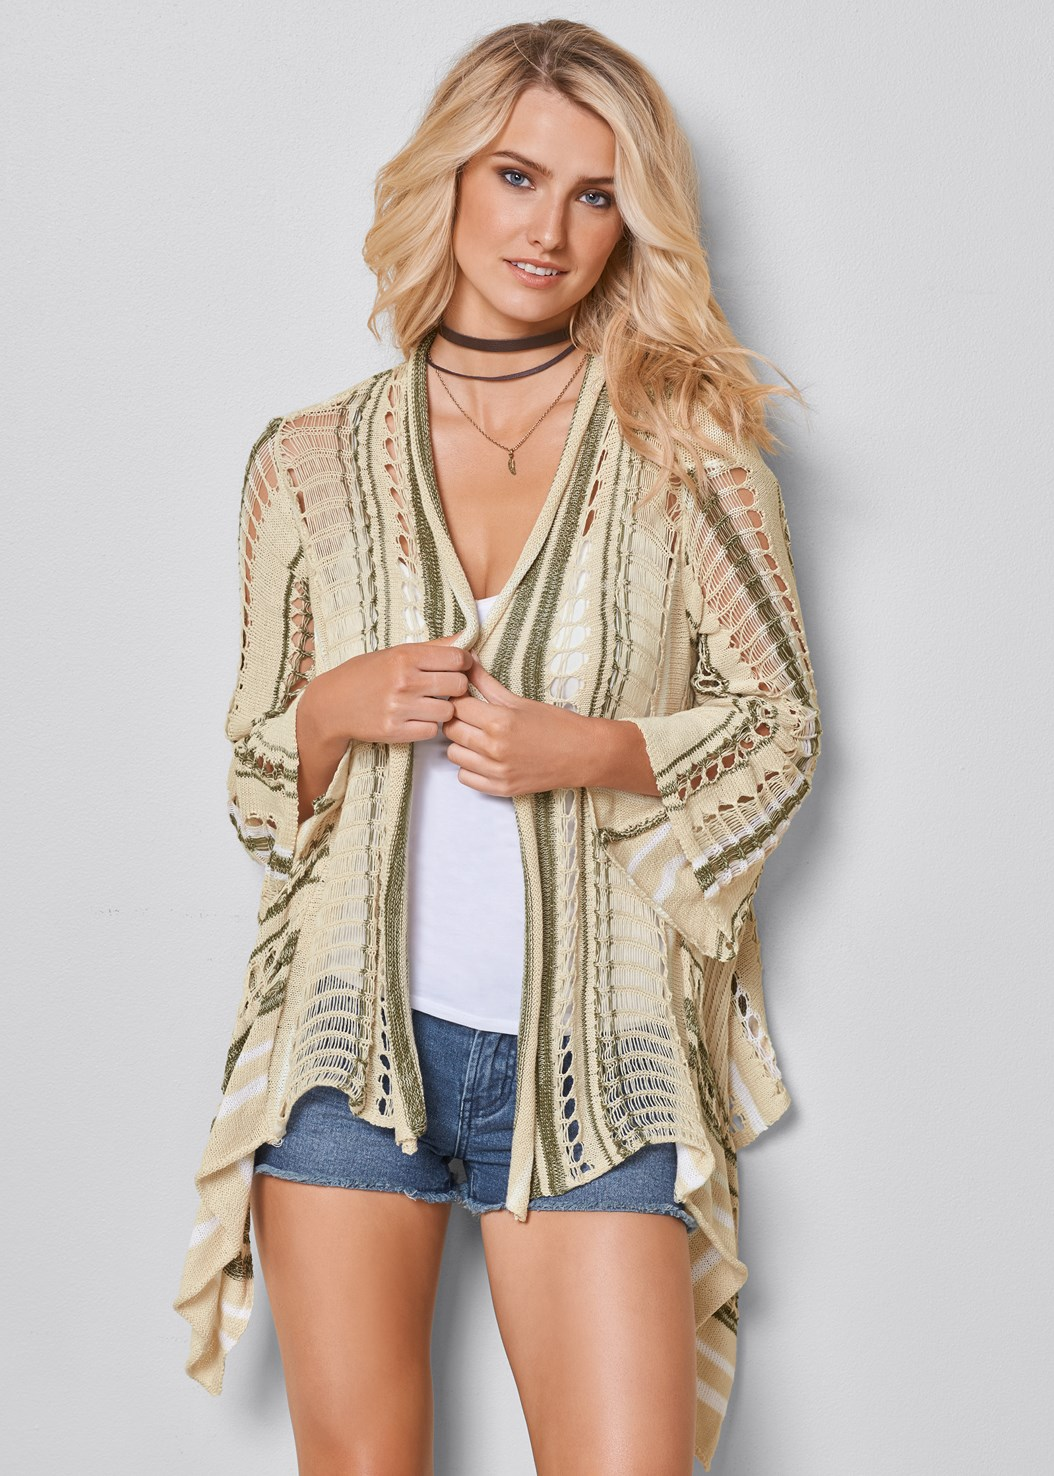 Multicolor Cardigan,Frayed Cut Off Jean Shorts